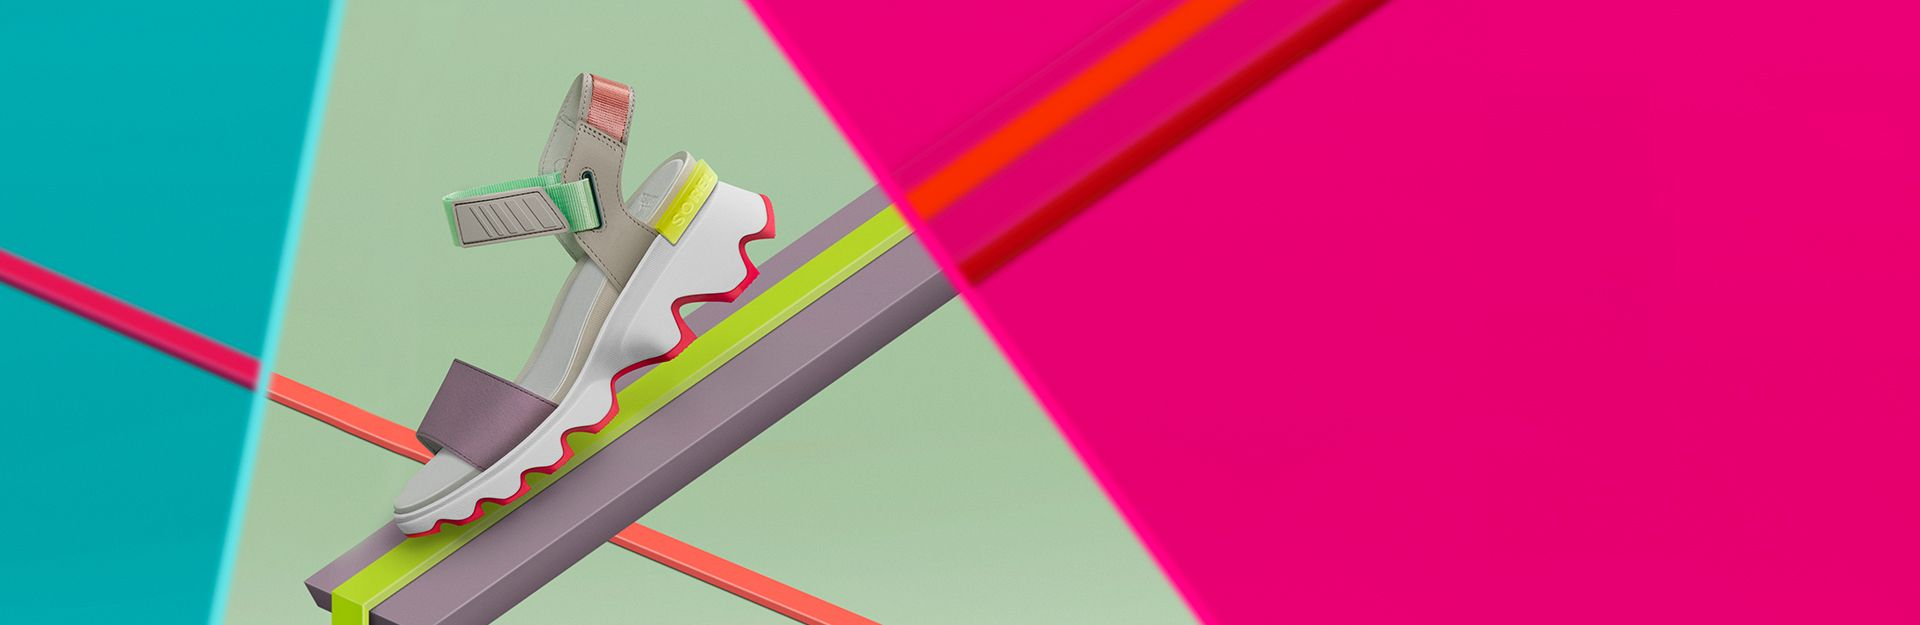 A Vibe Kinetic Sandal on colorful  neon background